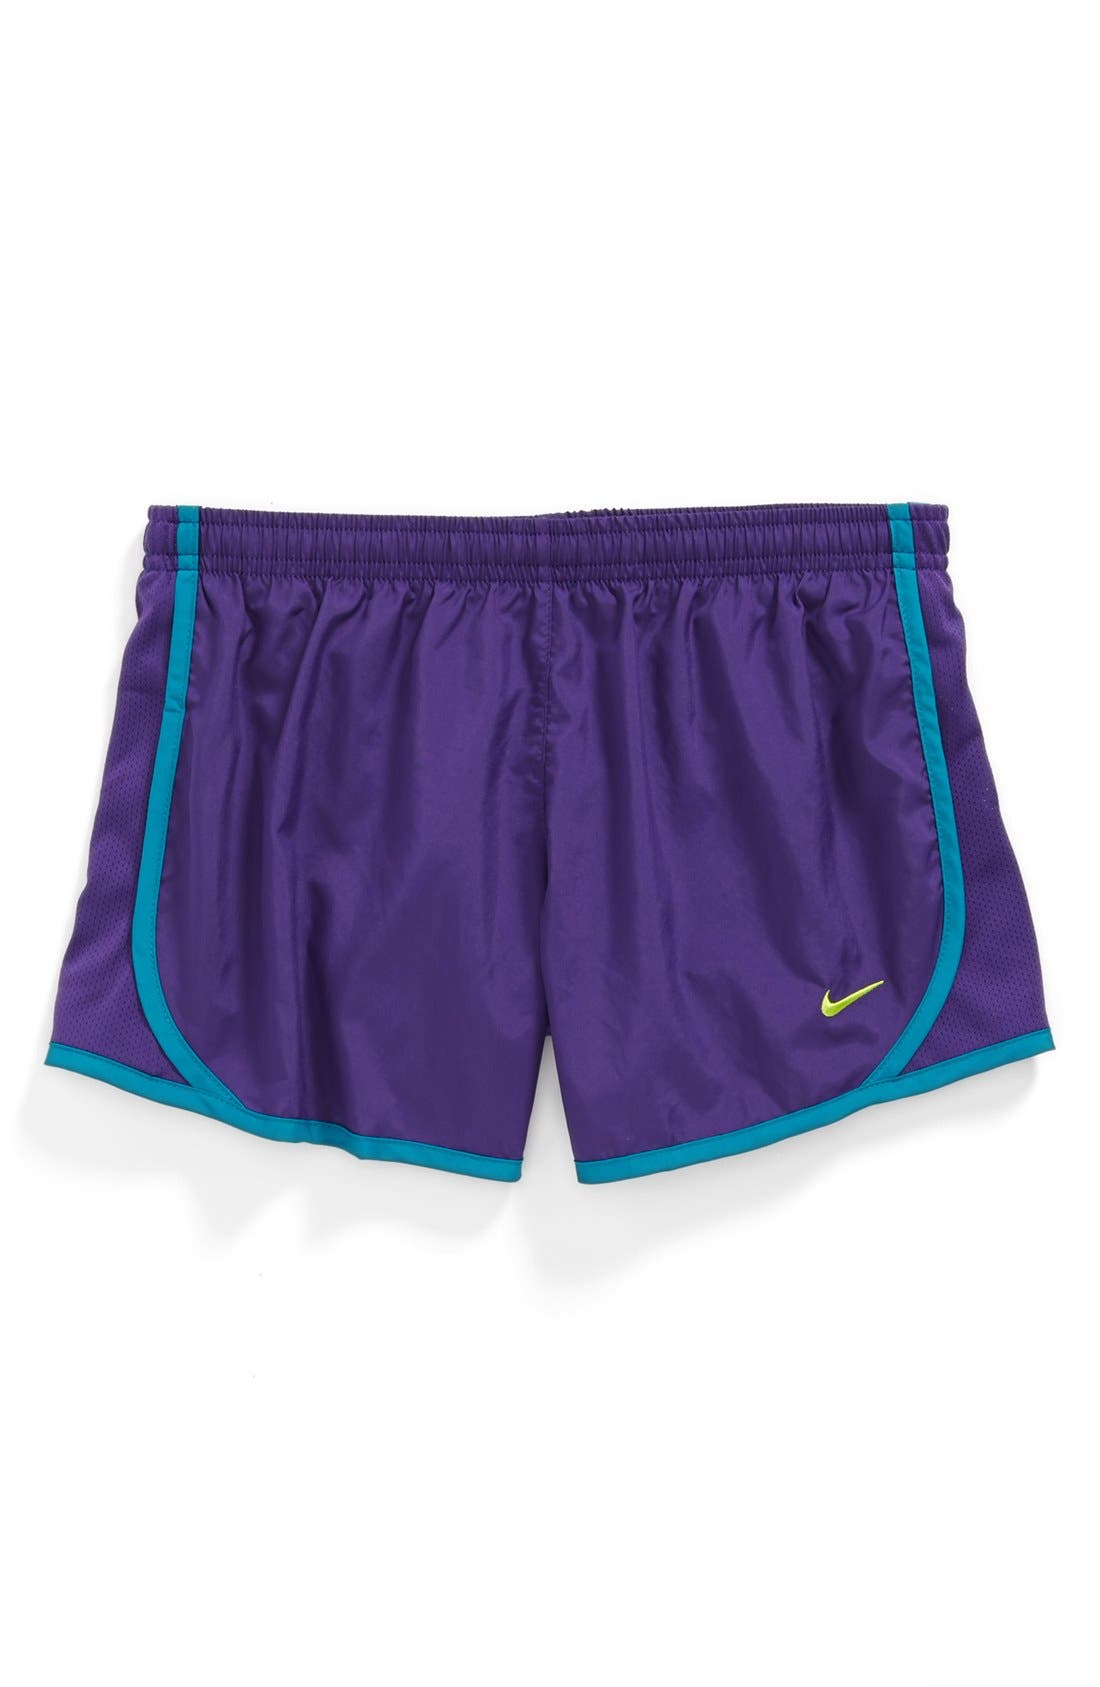 Alternate Image 1 Selected - Nike 'Tempo' Track Shorts (Little Girls & Big Girls)